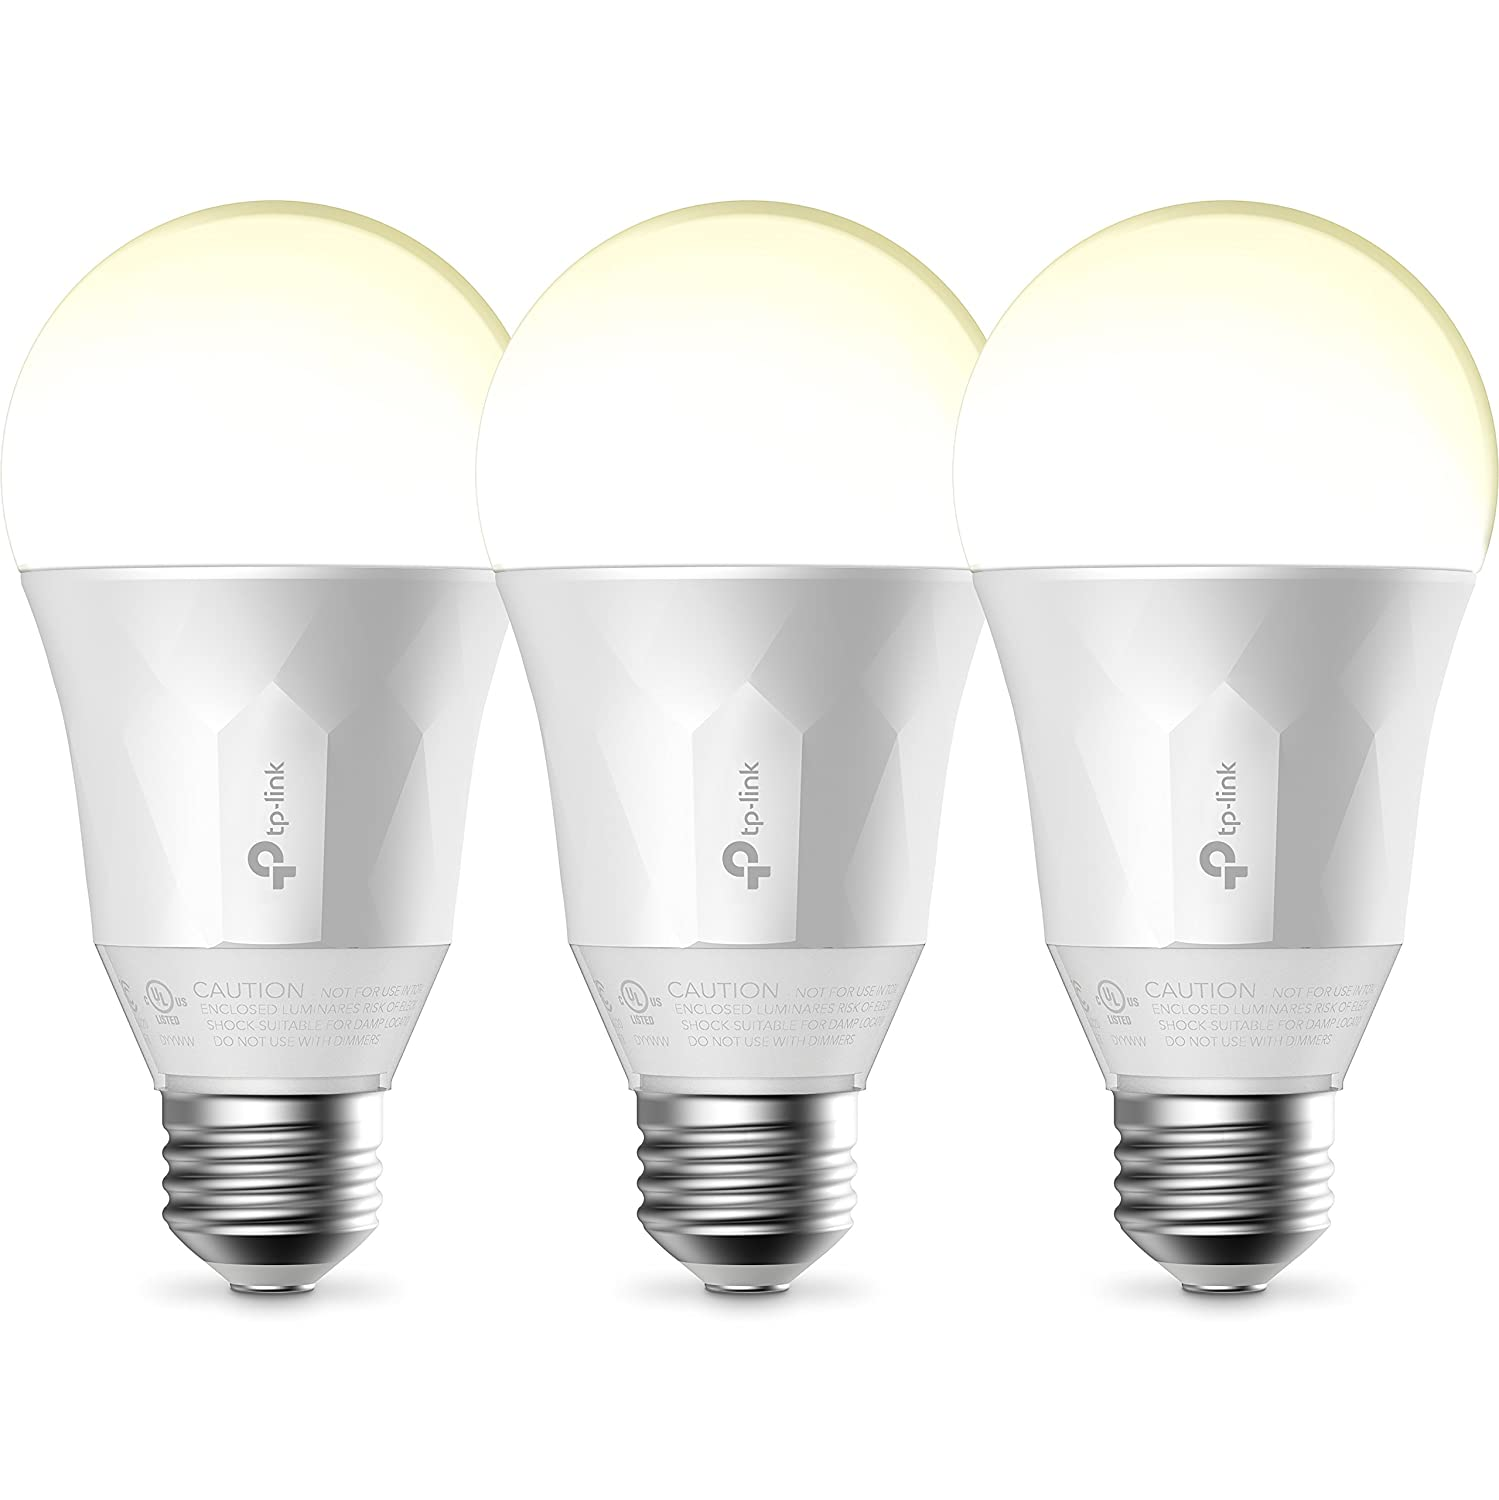 Kasa Smart Wi-Fi LED Light Bulb by TP-Link – Soft White, Dimmable, A19, No Hub Required, Works with Alexa and Google Assistant, 3-Pack LB100 TKIT Discontinued by Manufacturer